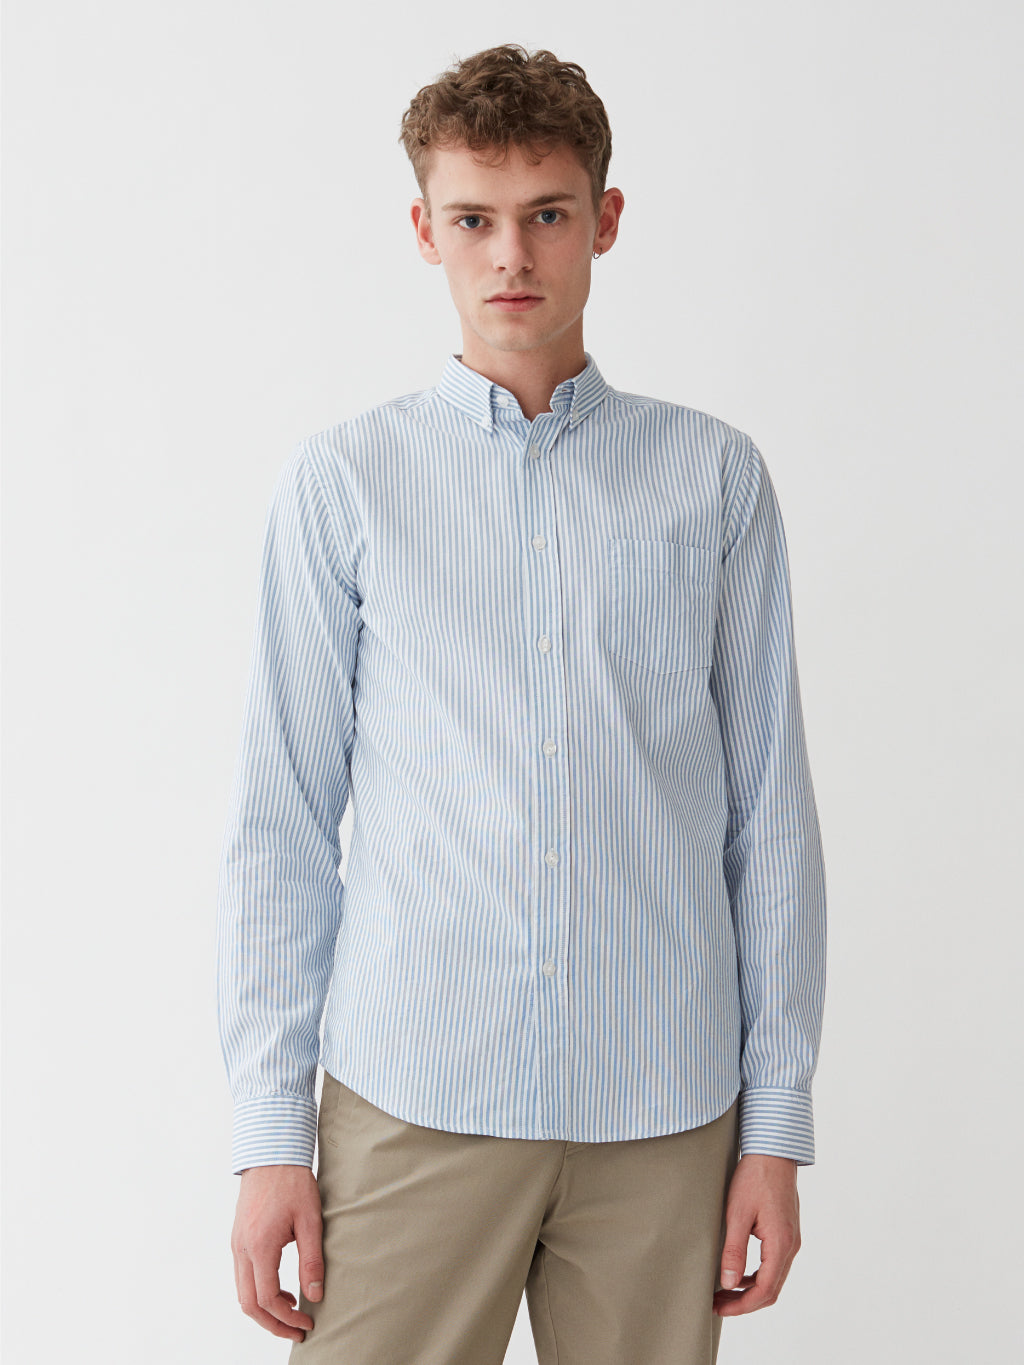 Ocean Oxford Shirt | Light Blue Striped